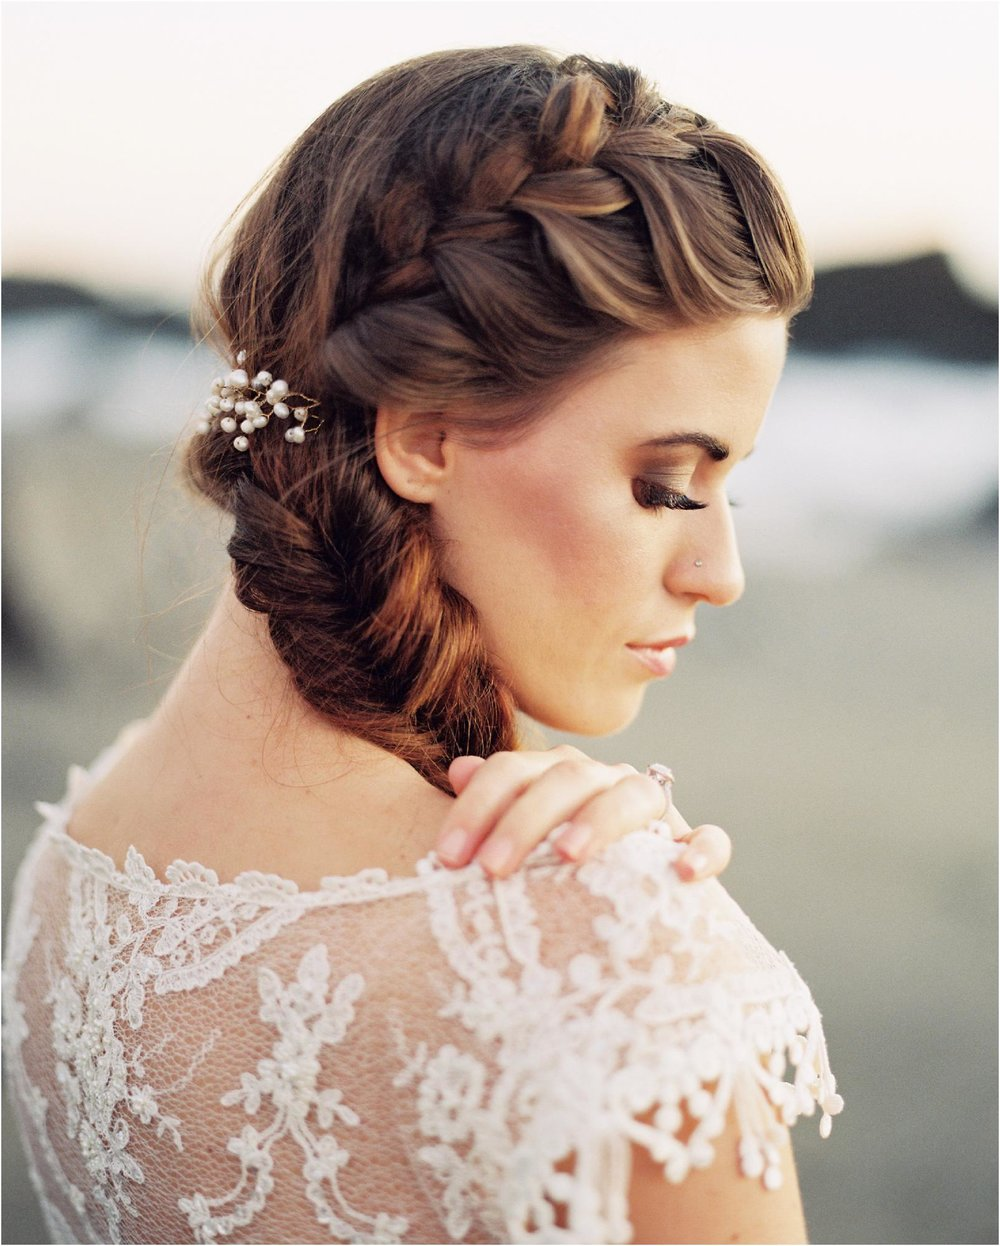 Seaside Bridal Session in Sonoma, California.   Dress: Claire Petibone https://clairepettibone.com/  Design & Florals: Thistle & Honey